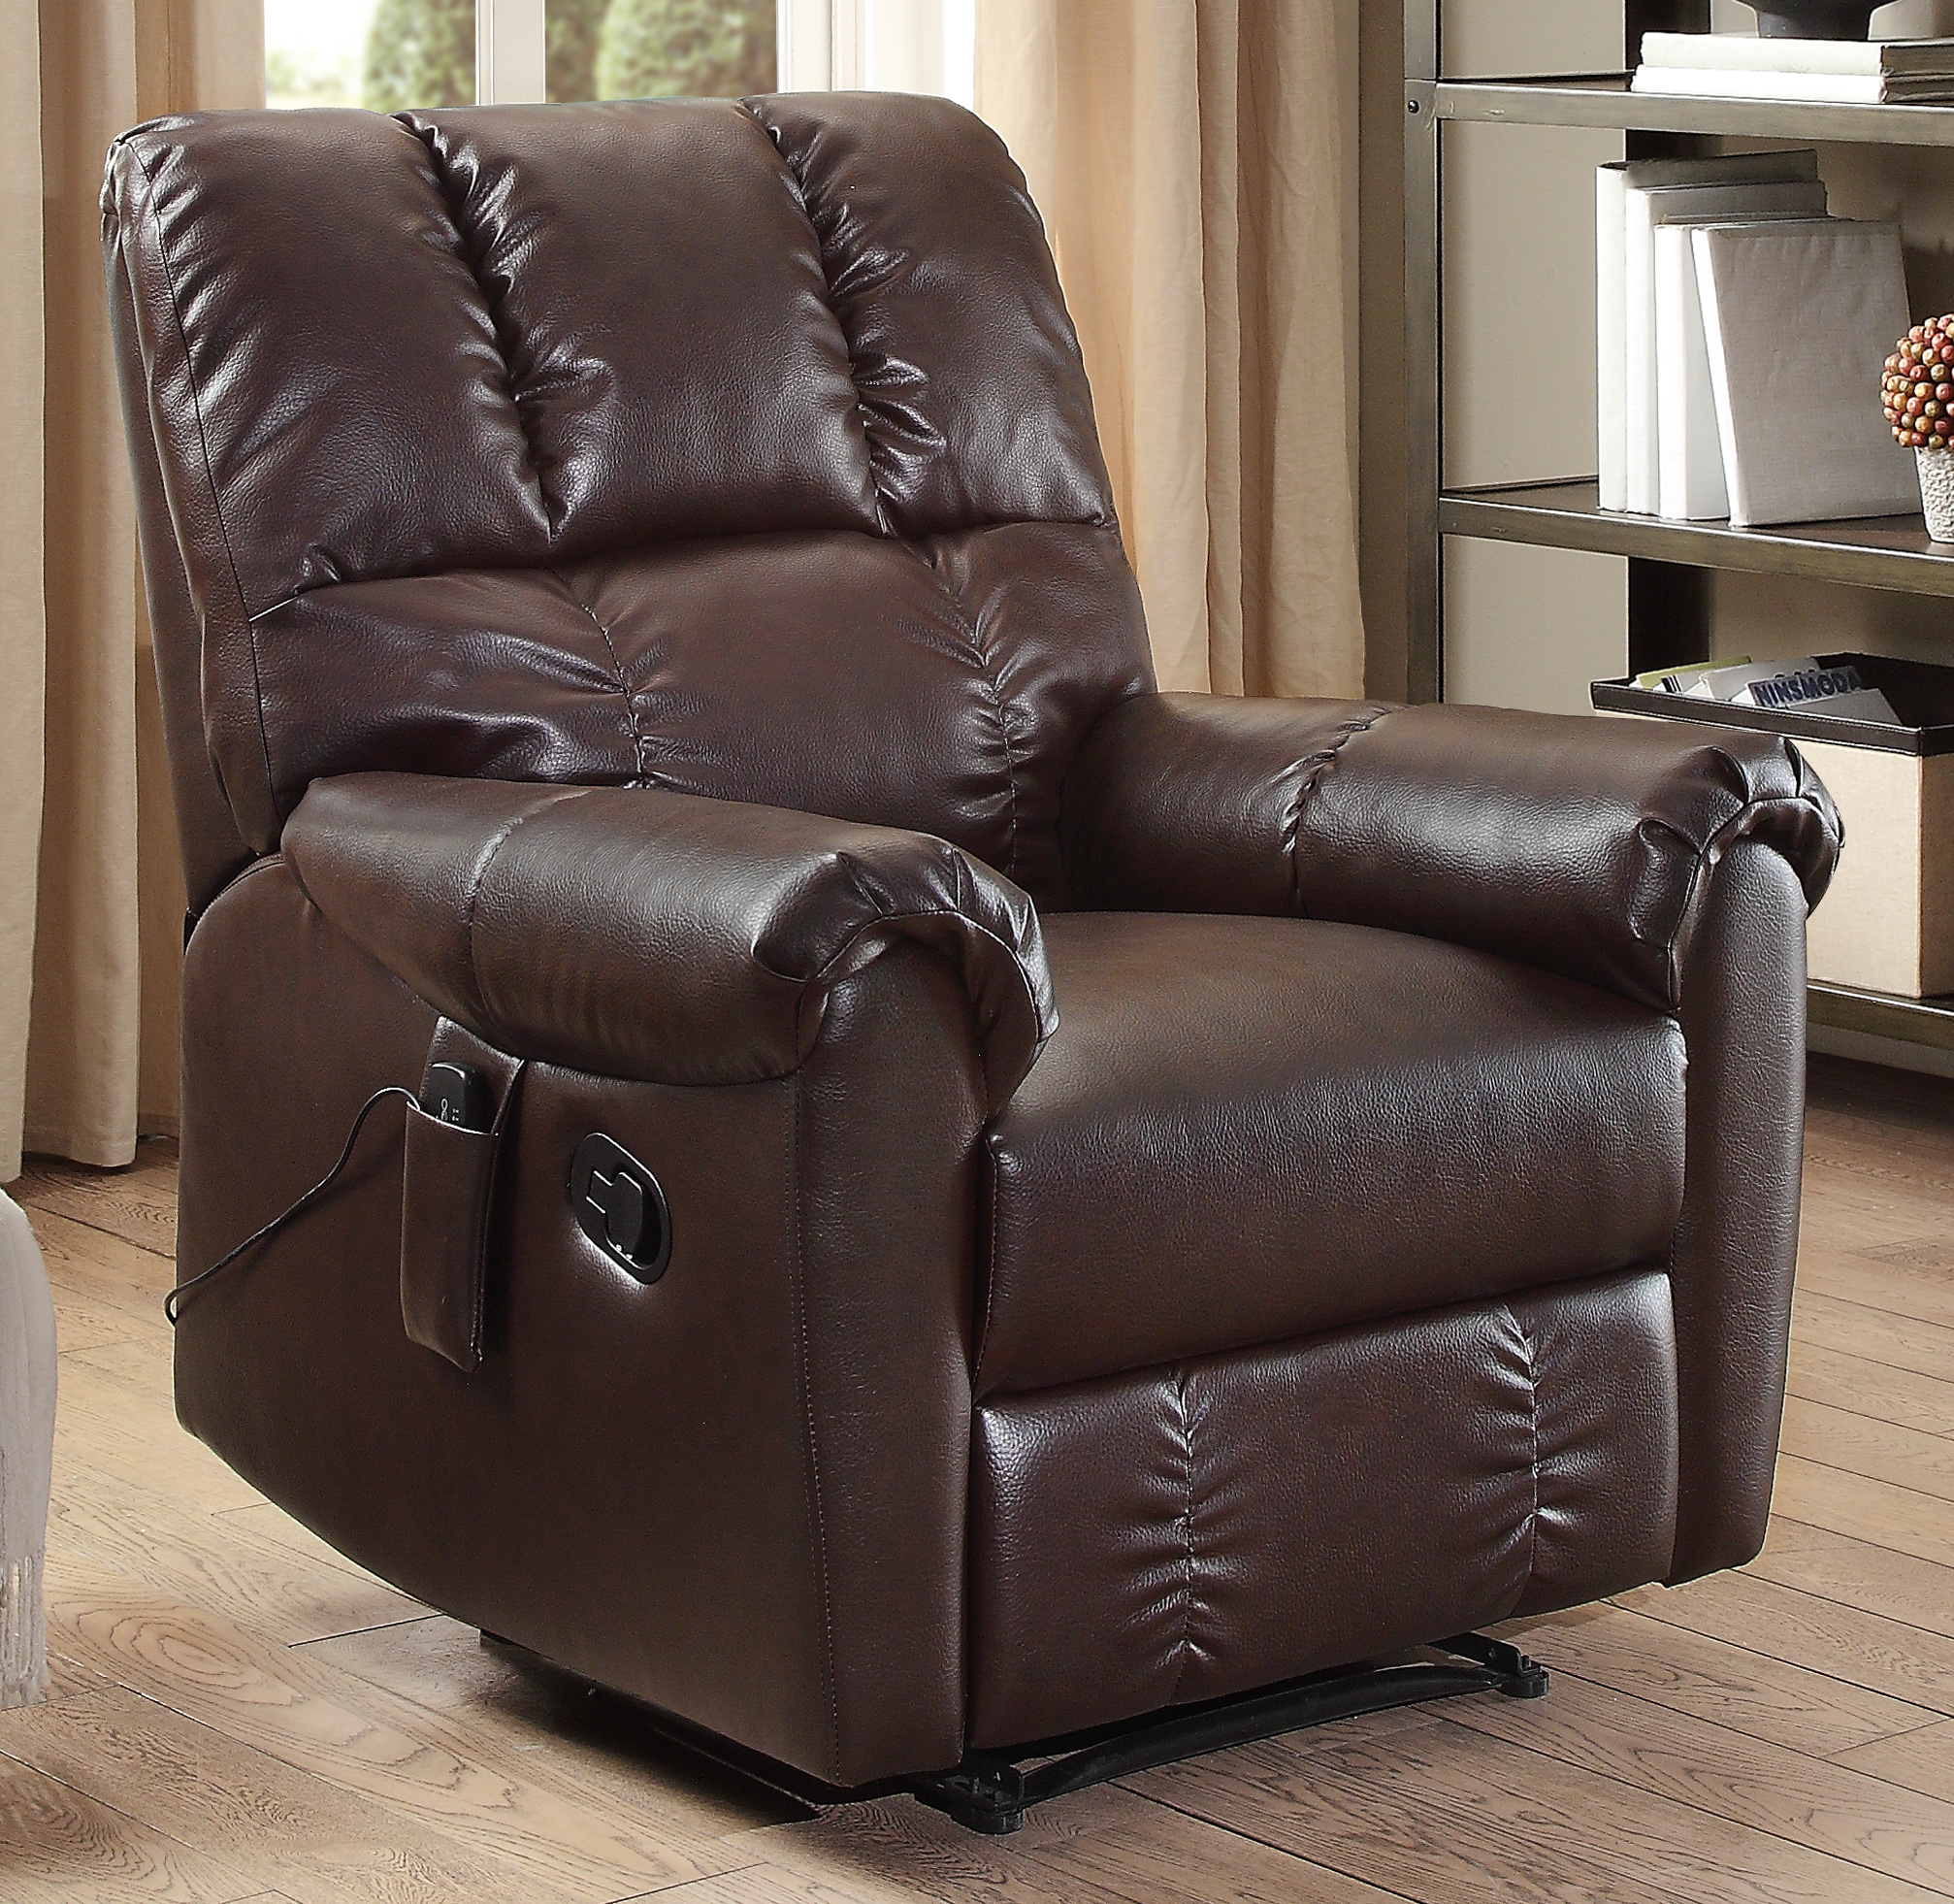 appliance colder upholstery at trim height feet hughes products with block width s cuddle serta show chair item and recliner by threshold furniture